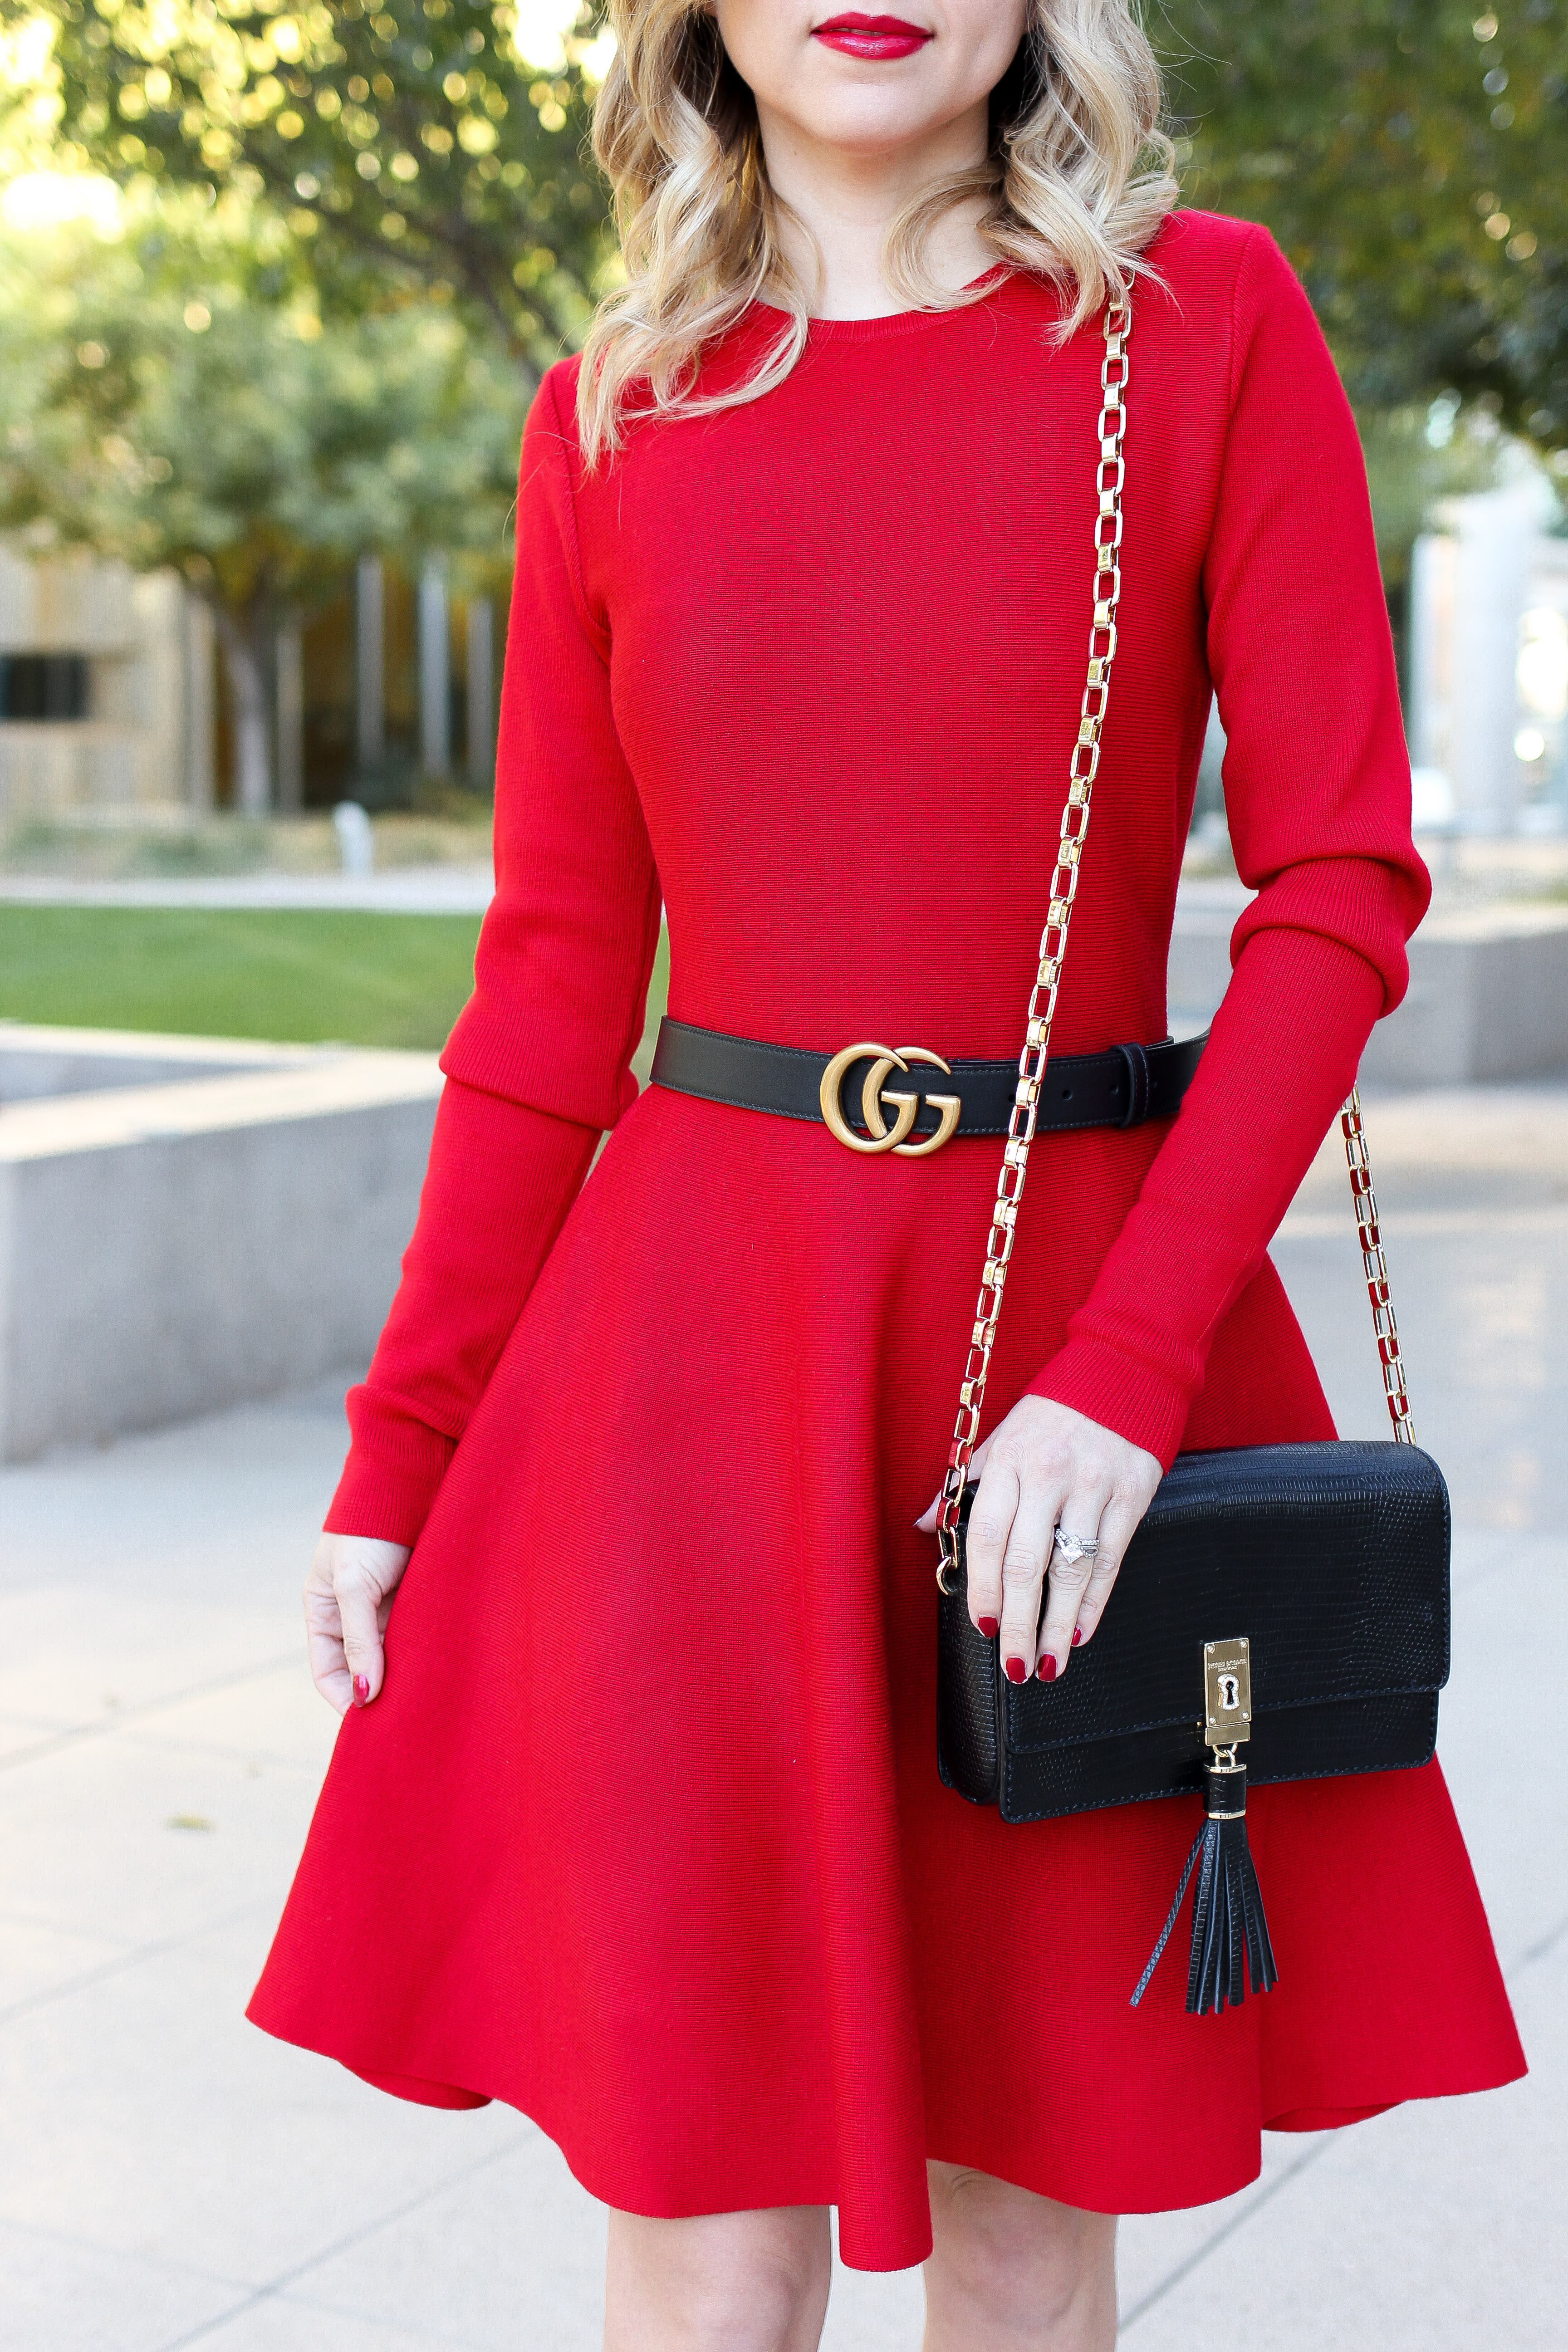 Simply Sutter – Red Dress – holiday dress – gucci belt – holiday style8879